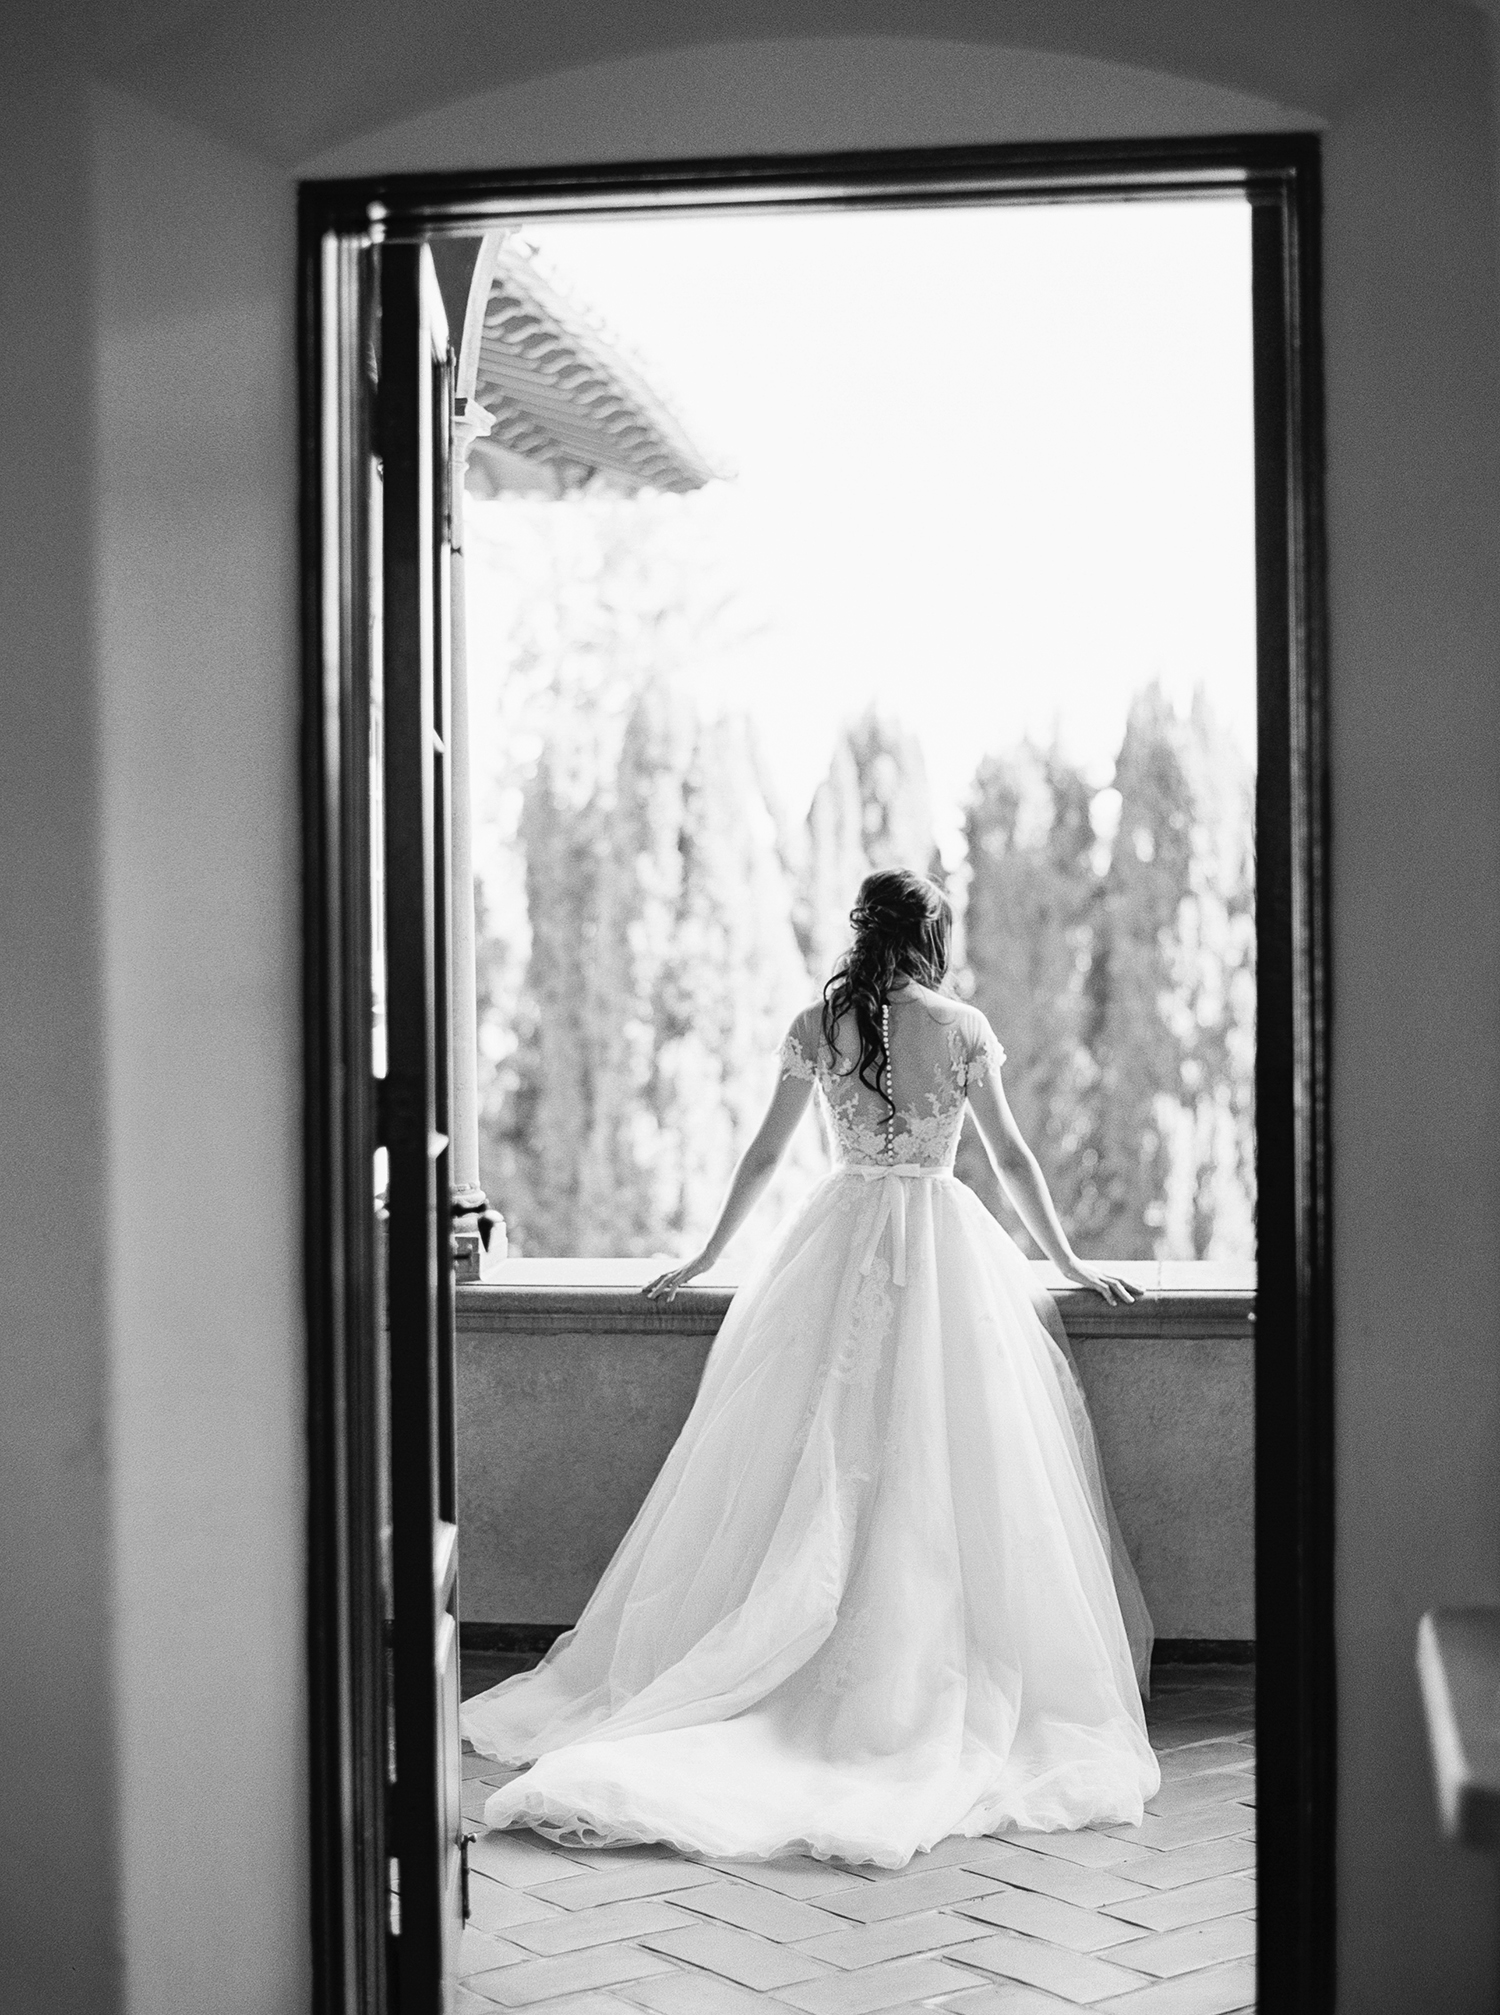 Five Times Every Bride Should Stick Up for Herself When Dress Shopping